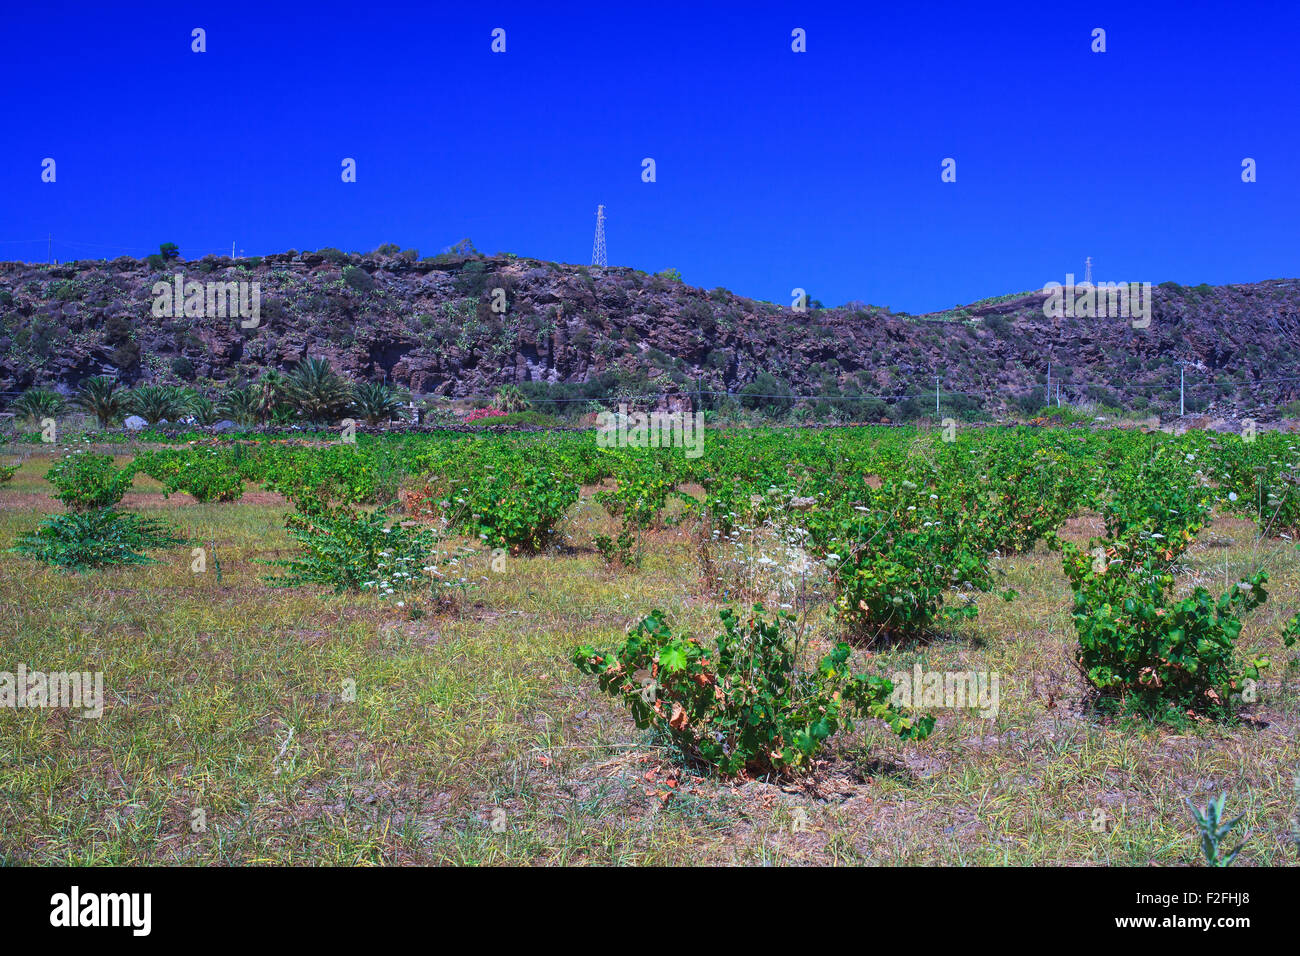 View of Zibibbo plants (Muscat of Alexandria ), white wine